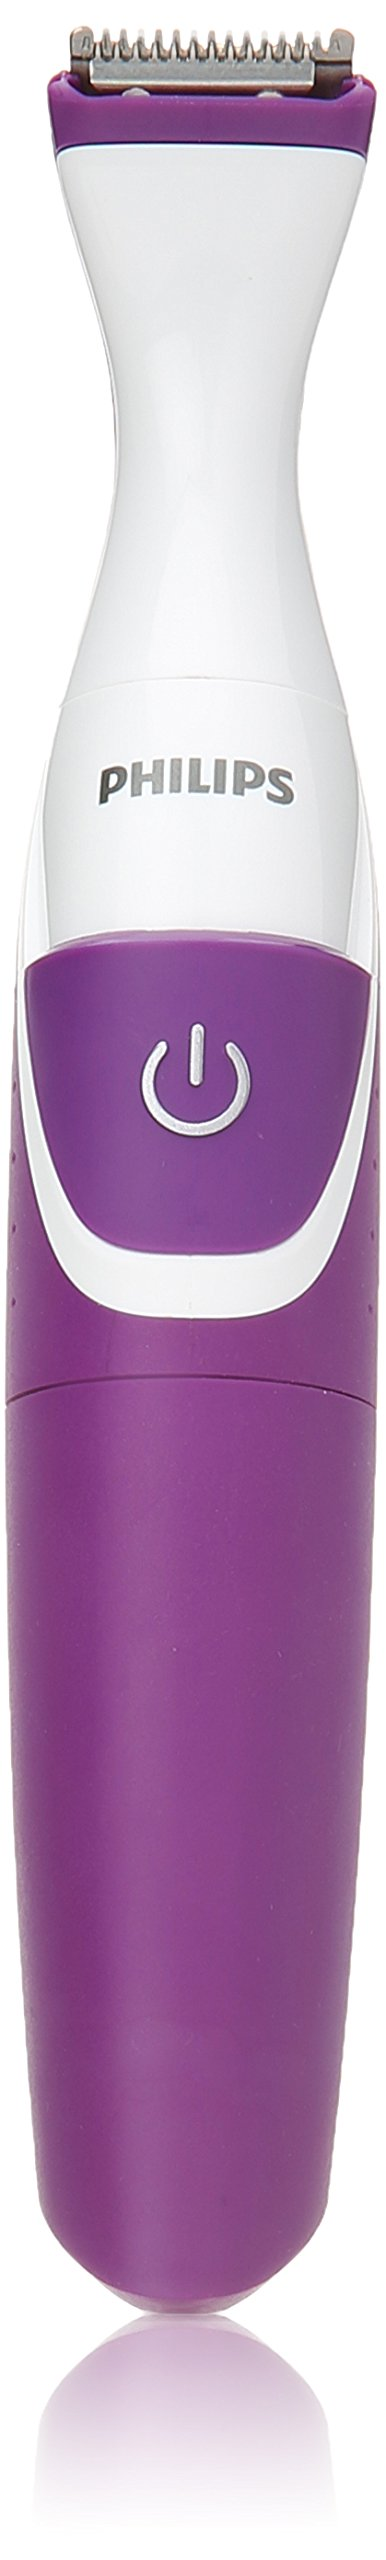 Philips Beauty BikiniGenie Cordless Bikini Trimmer for Women, Showerproof Hair Removal, BRT383/50